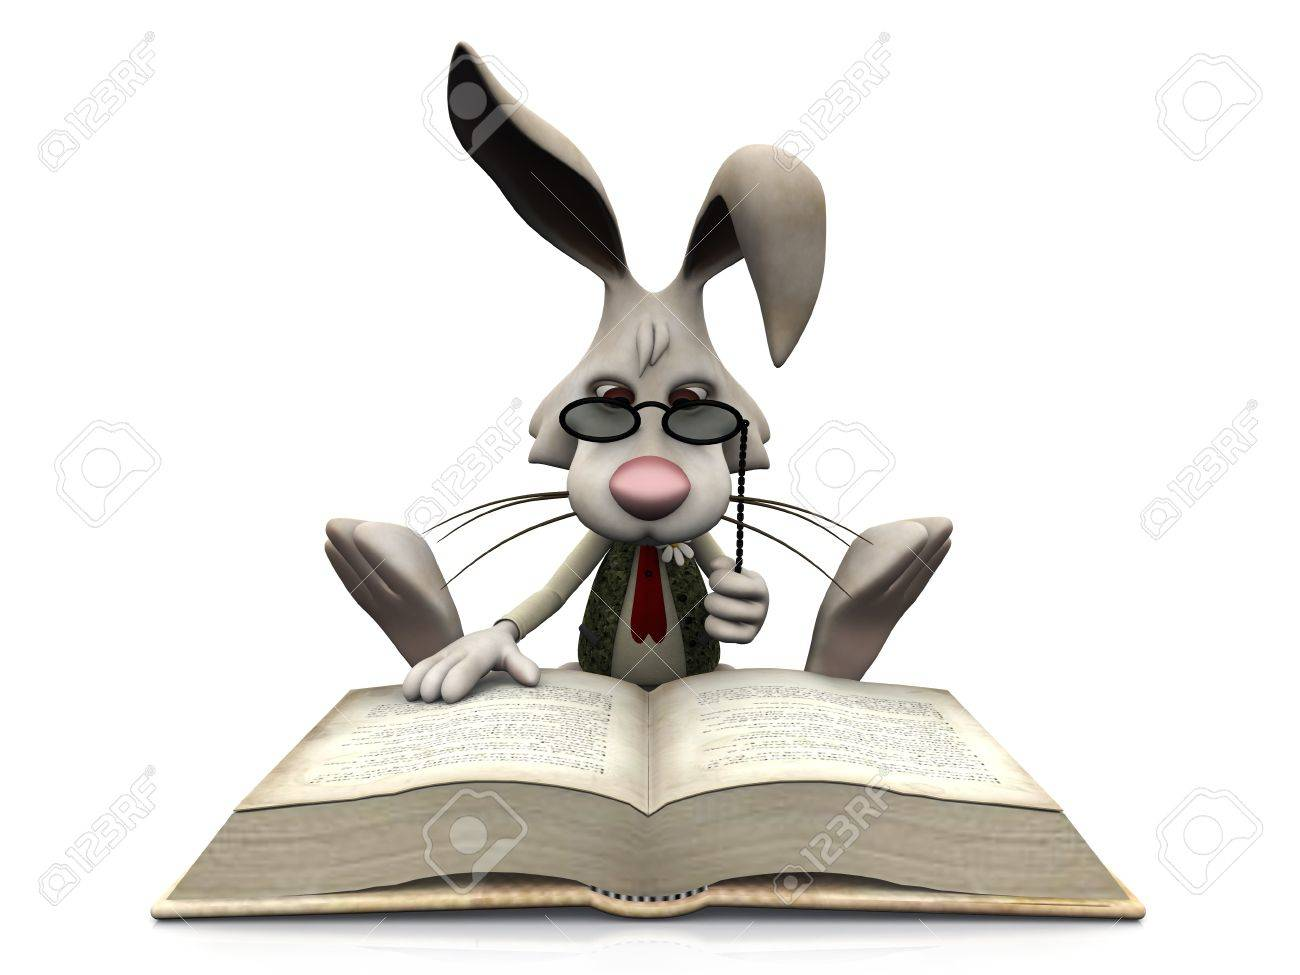 A cartoon rabbit wearing glasses sitting on the floor and reading a big book  White background Stock Photo - 13045921